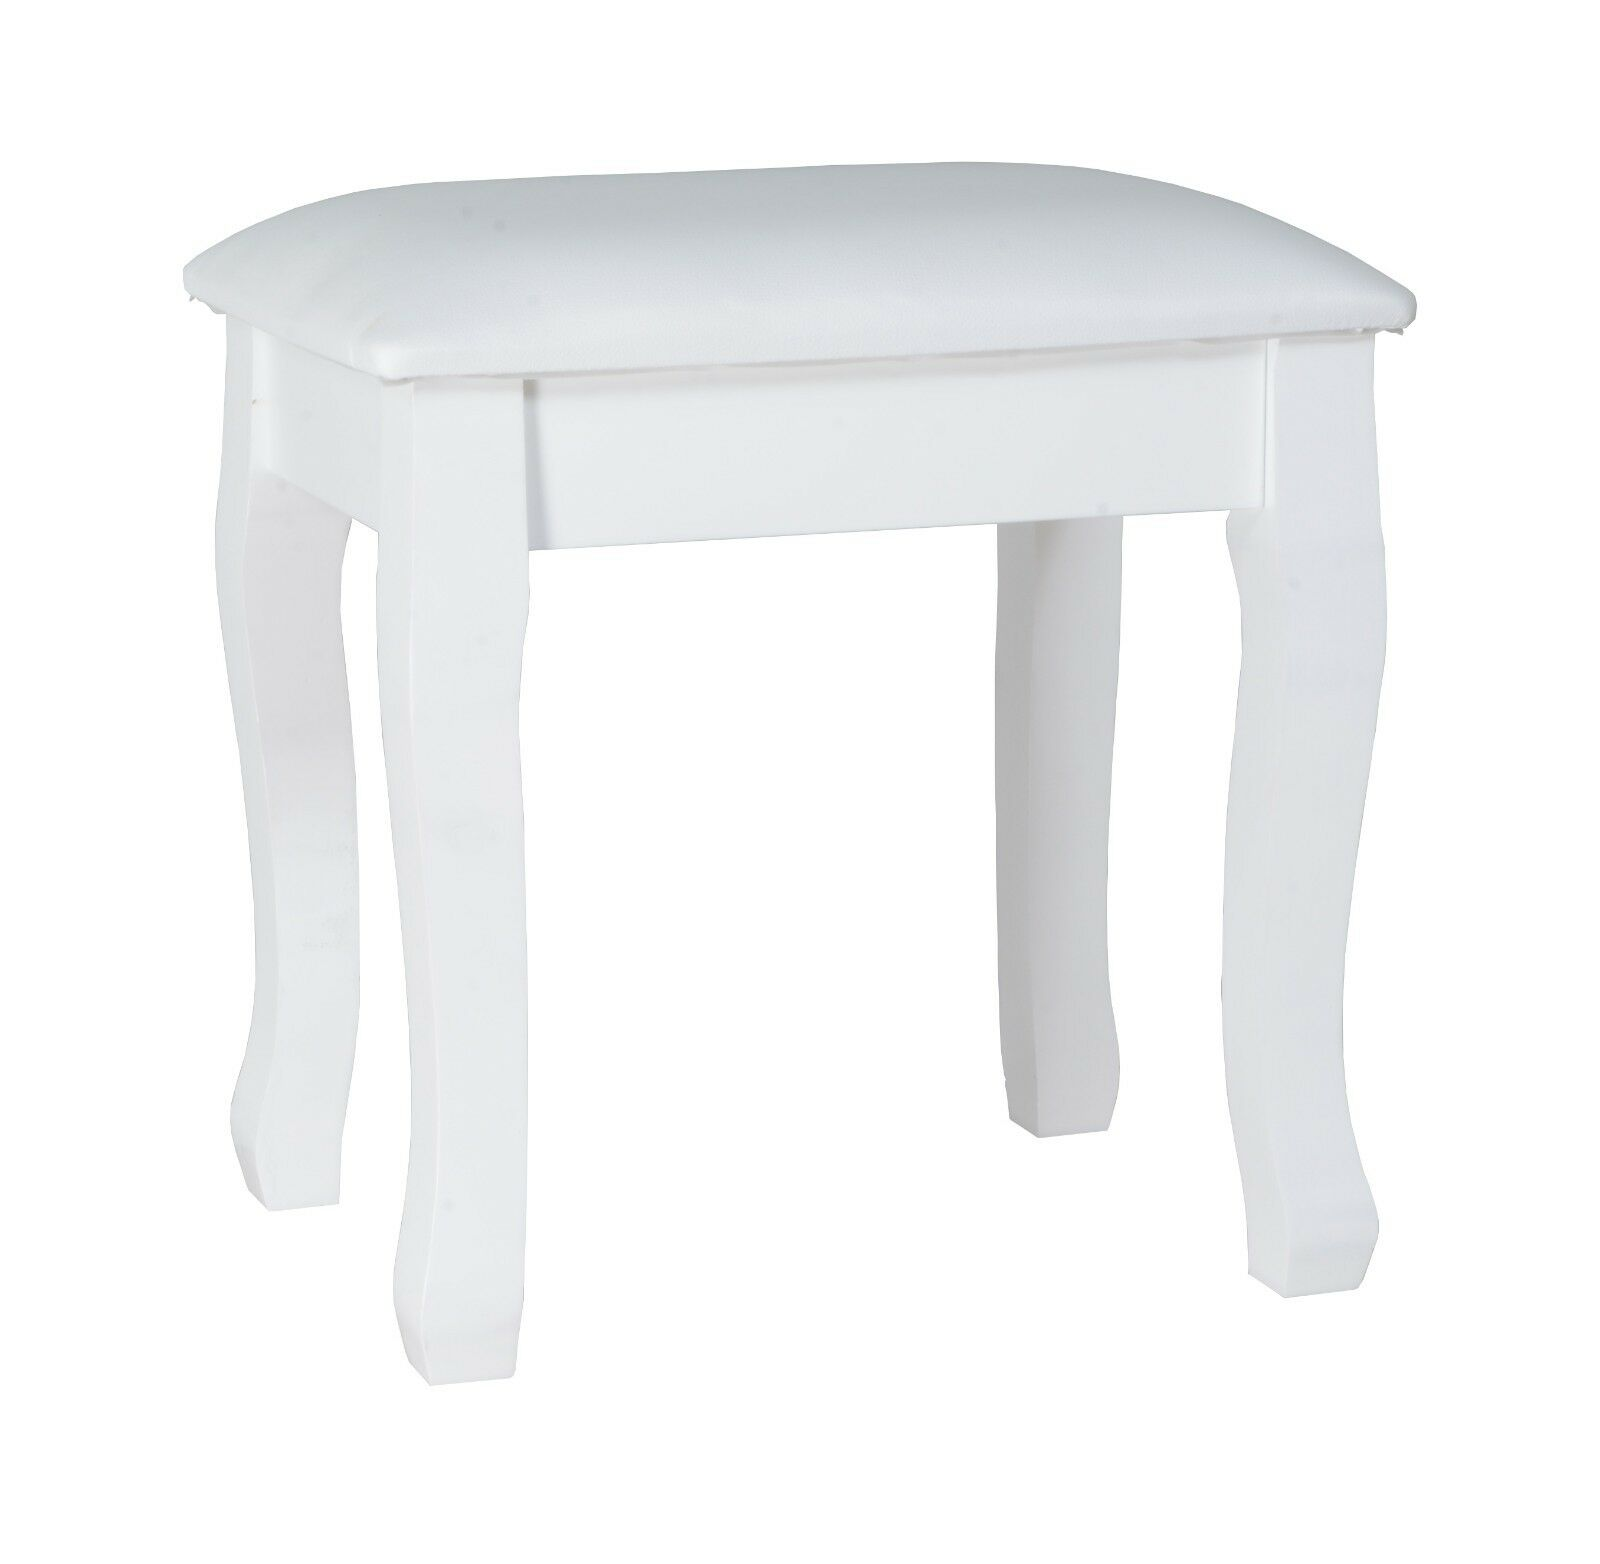 Vanity Stool Padded Makeup Chair Bench with Solid Wood Legs